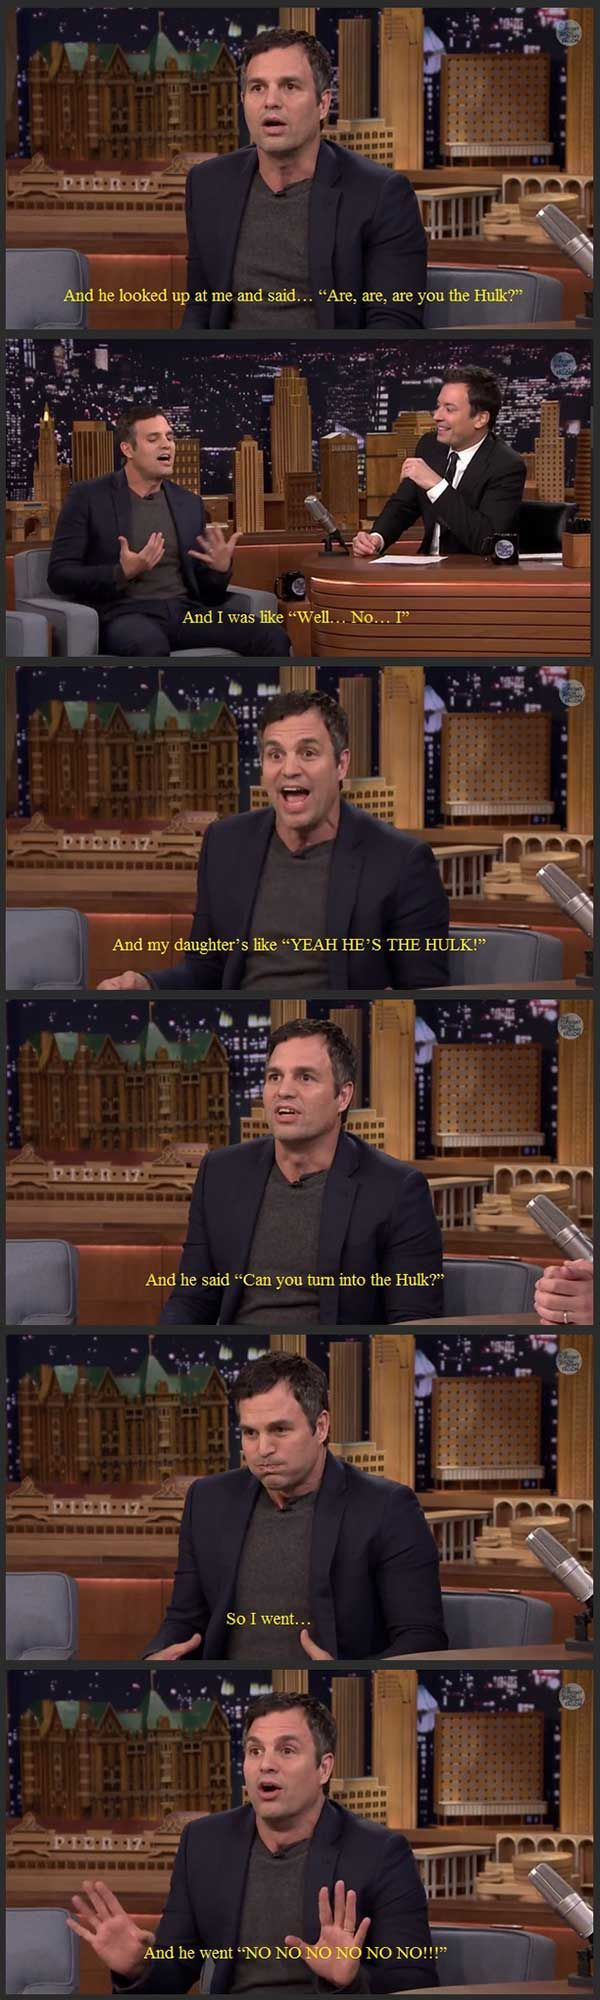 """Mark Ruffalo on going to his daughter's preschool"" — This reminds me of a story my mom told me about someone in her Girl Scout troop met her dad and asked, wide-eyed, ""Are...aren't you Jimmy Stewart?!"" :o)"